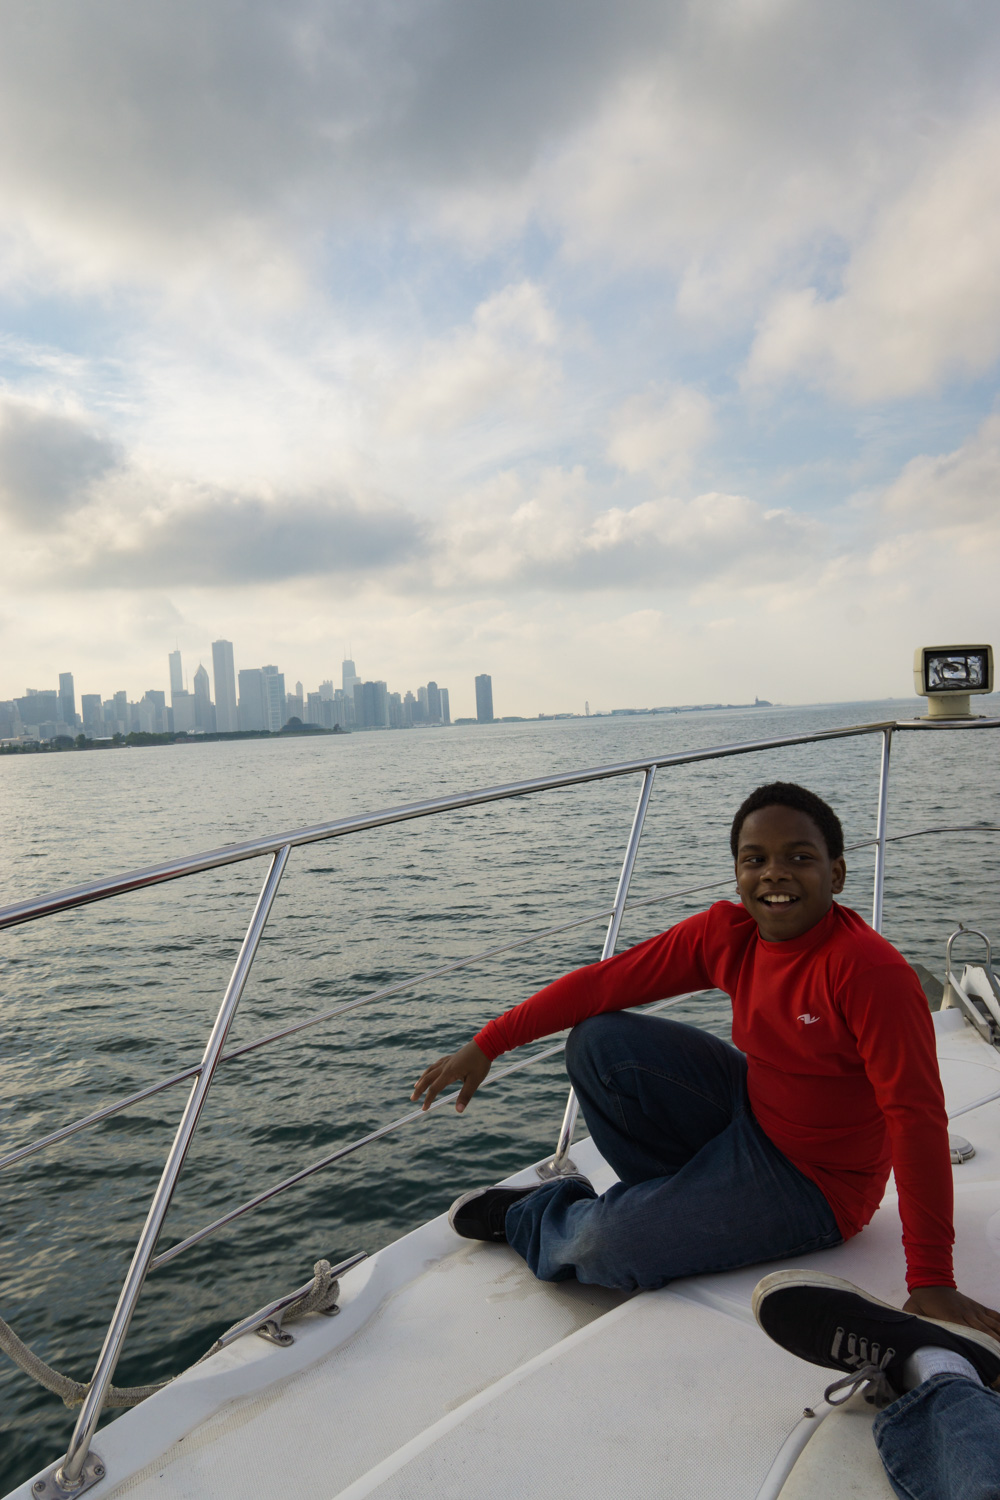 Teen enjoying himself while viewing Chicago from afar